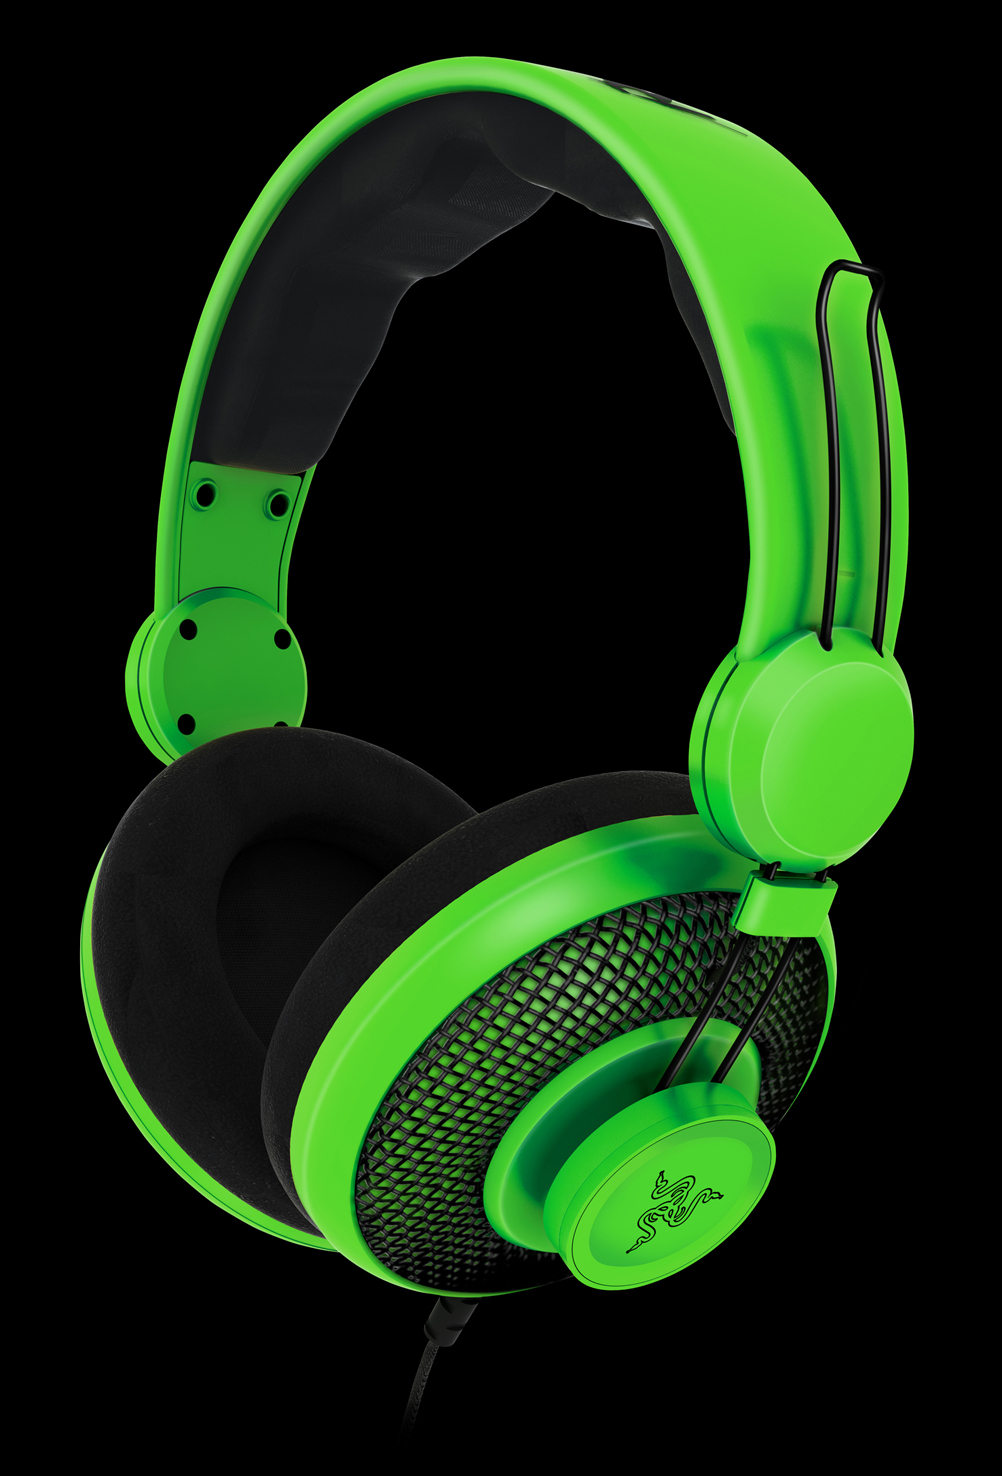 Razer Orca Headphones for both gamers and music maniacs